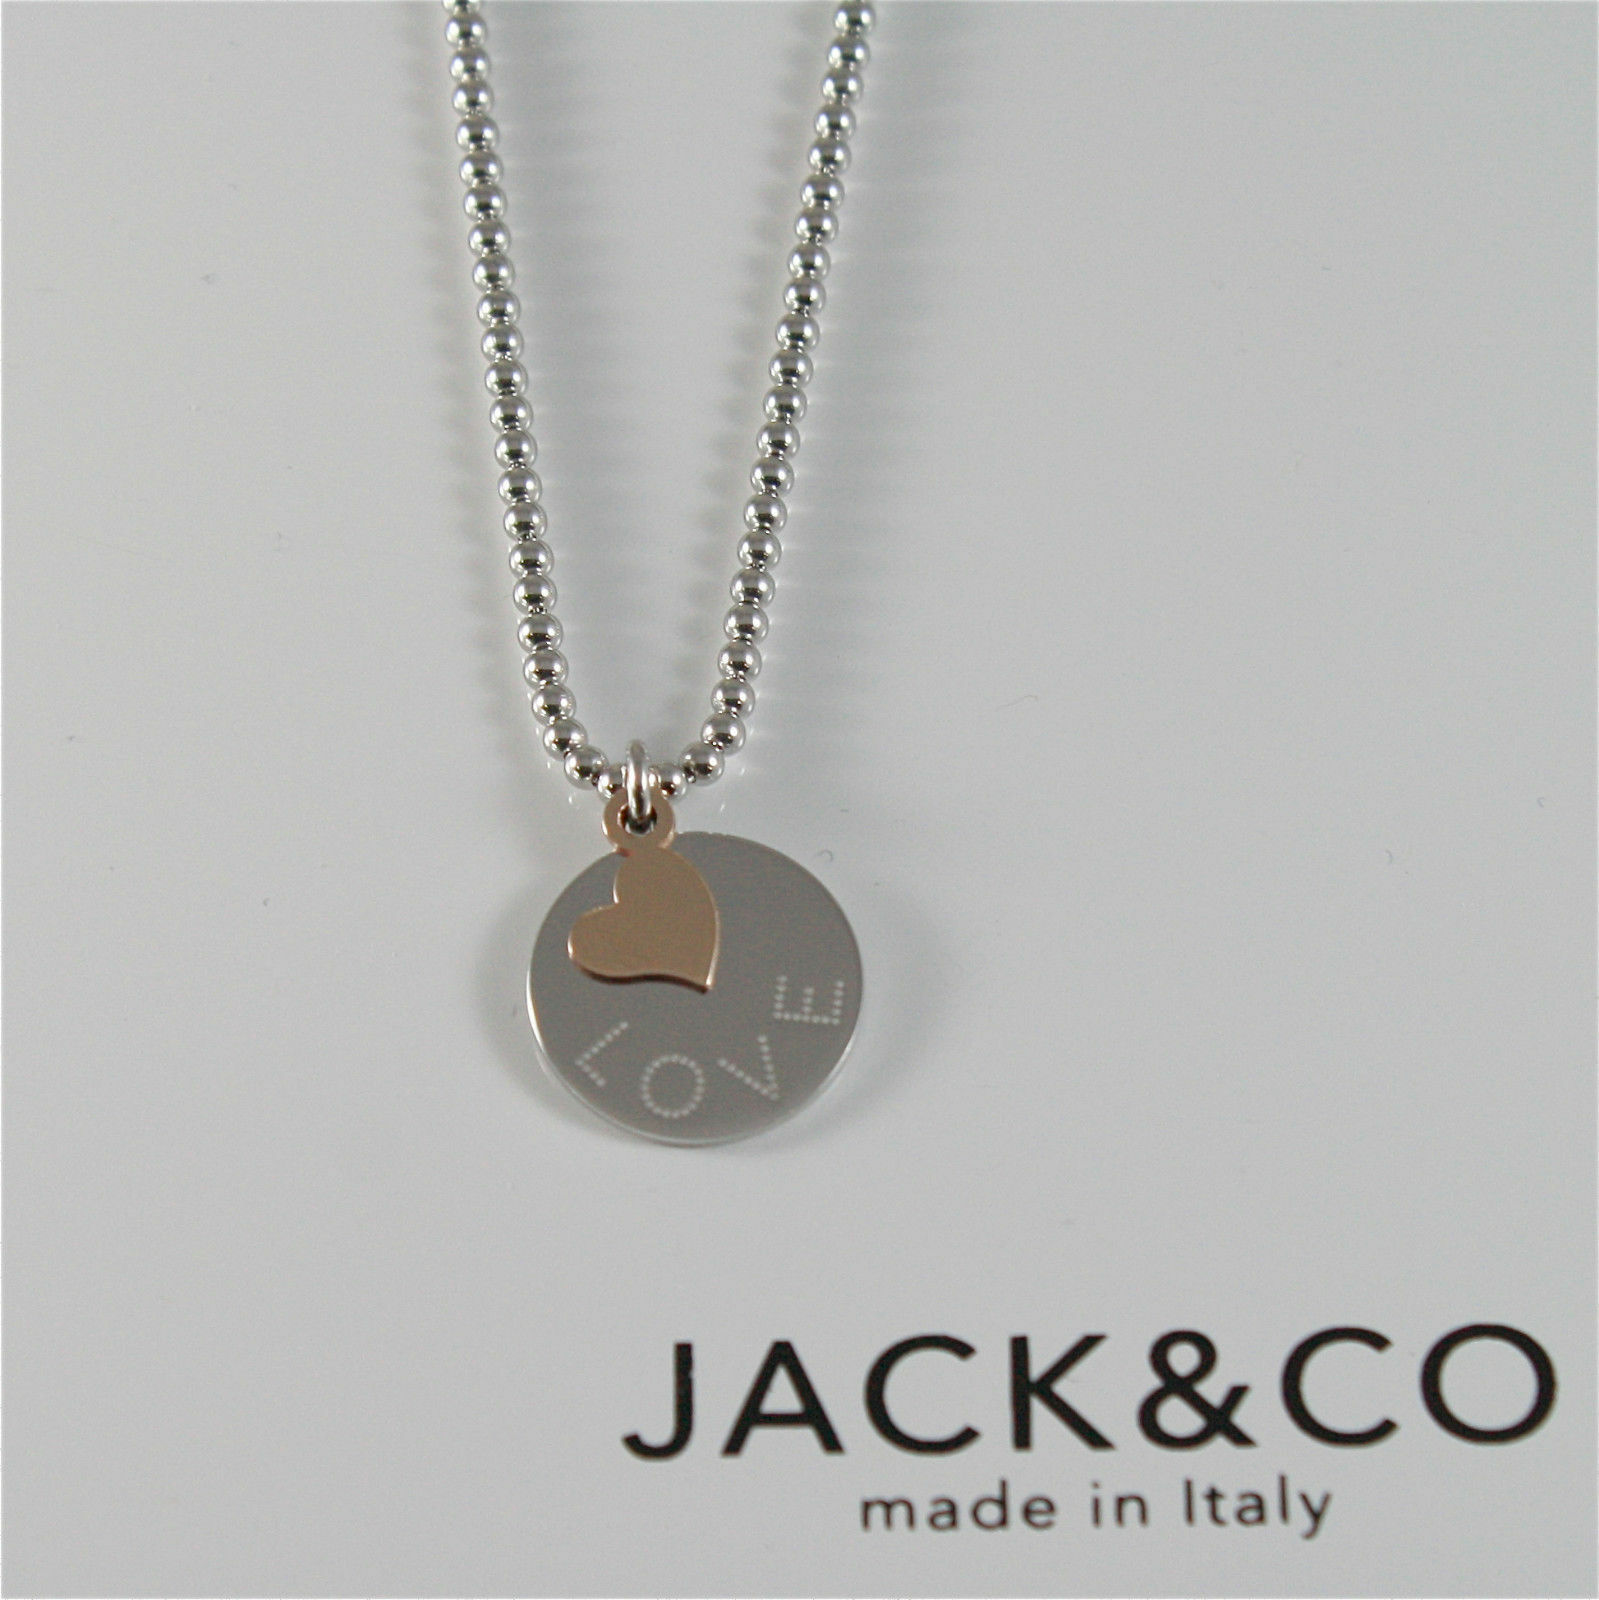 Necklace to Balls Silver 925 Jack&co with Heart in Rose Gold 9KT JCN0545